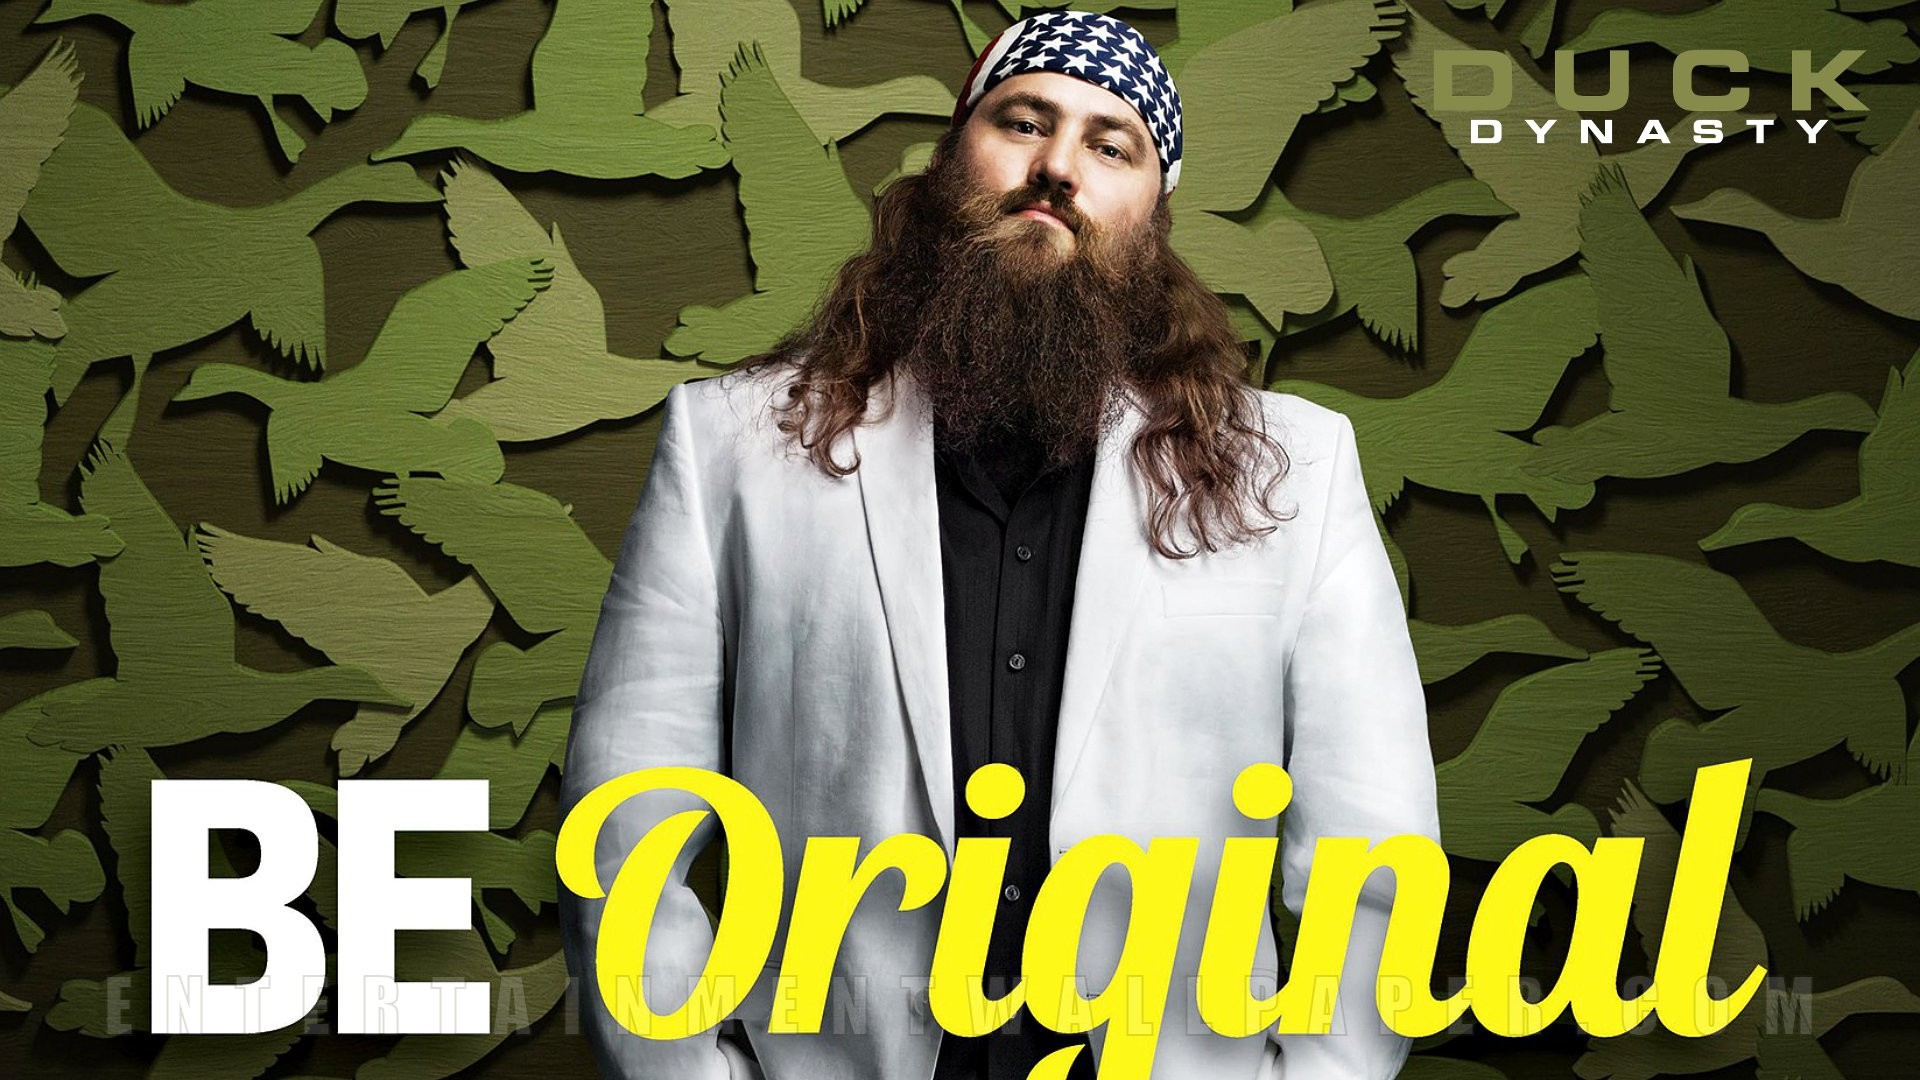 Res: 1920x1080, ... Duck Dynasty Wallpaper 20043367 Size 1920X1080 More Duck Dynasty ...